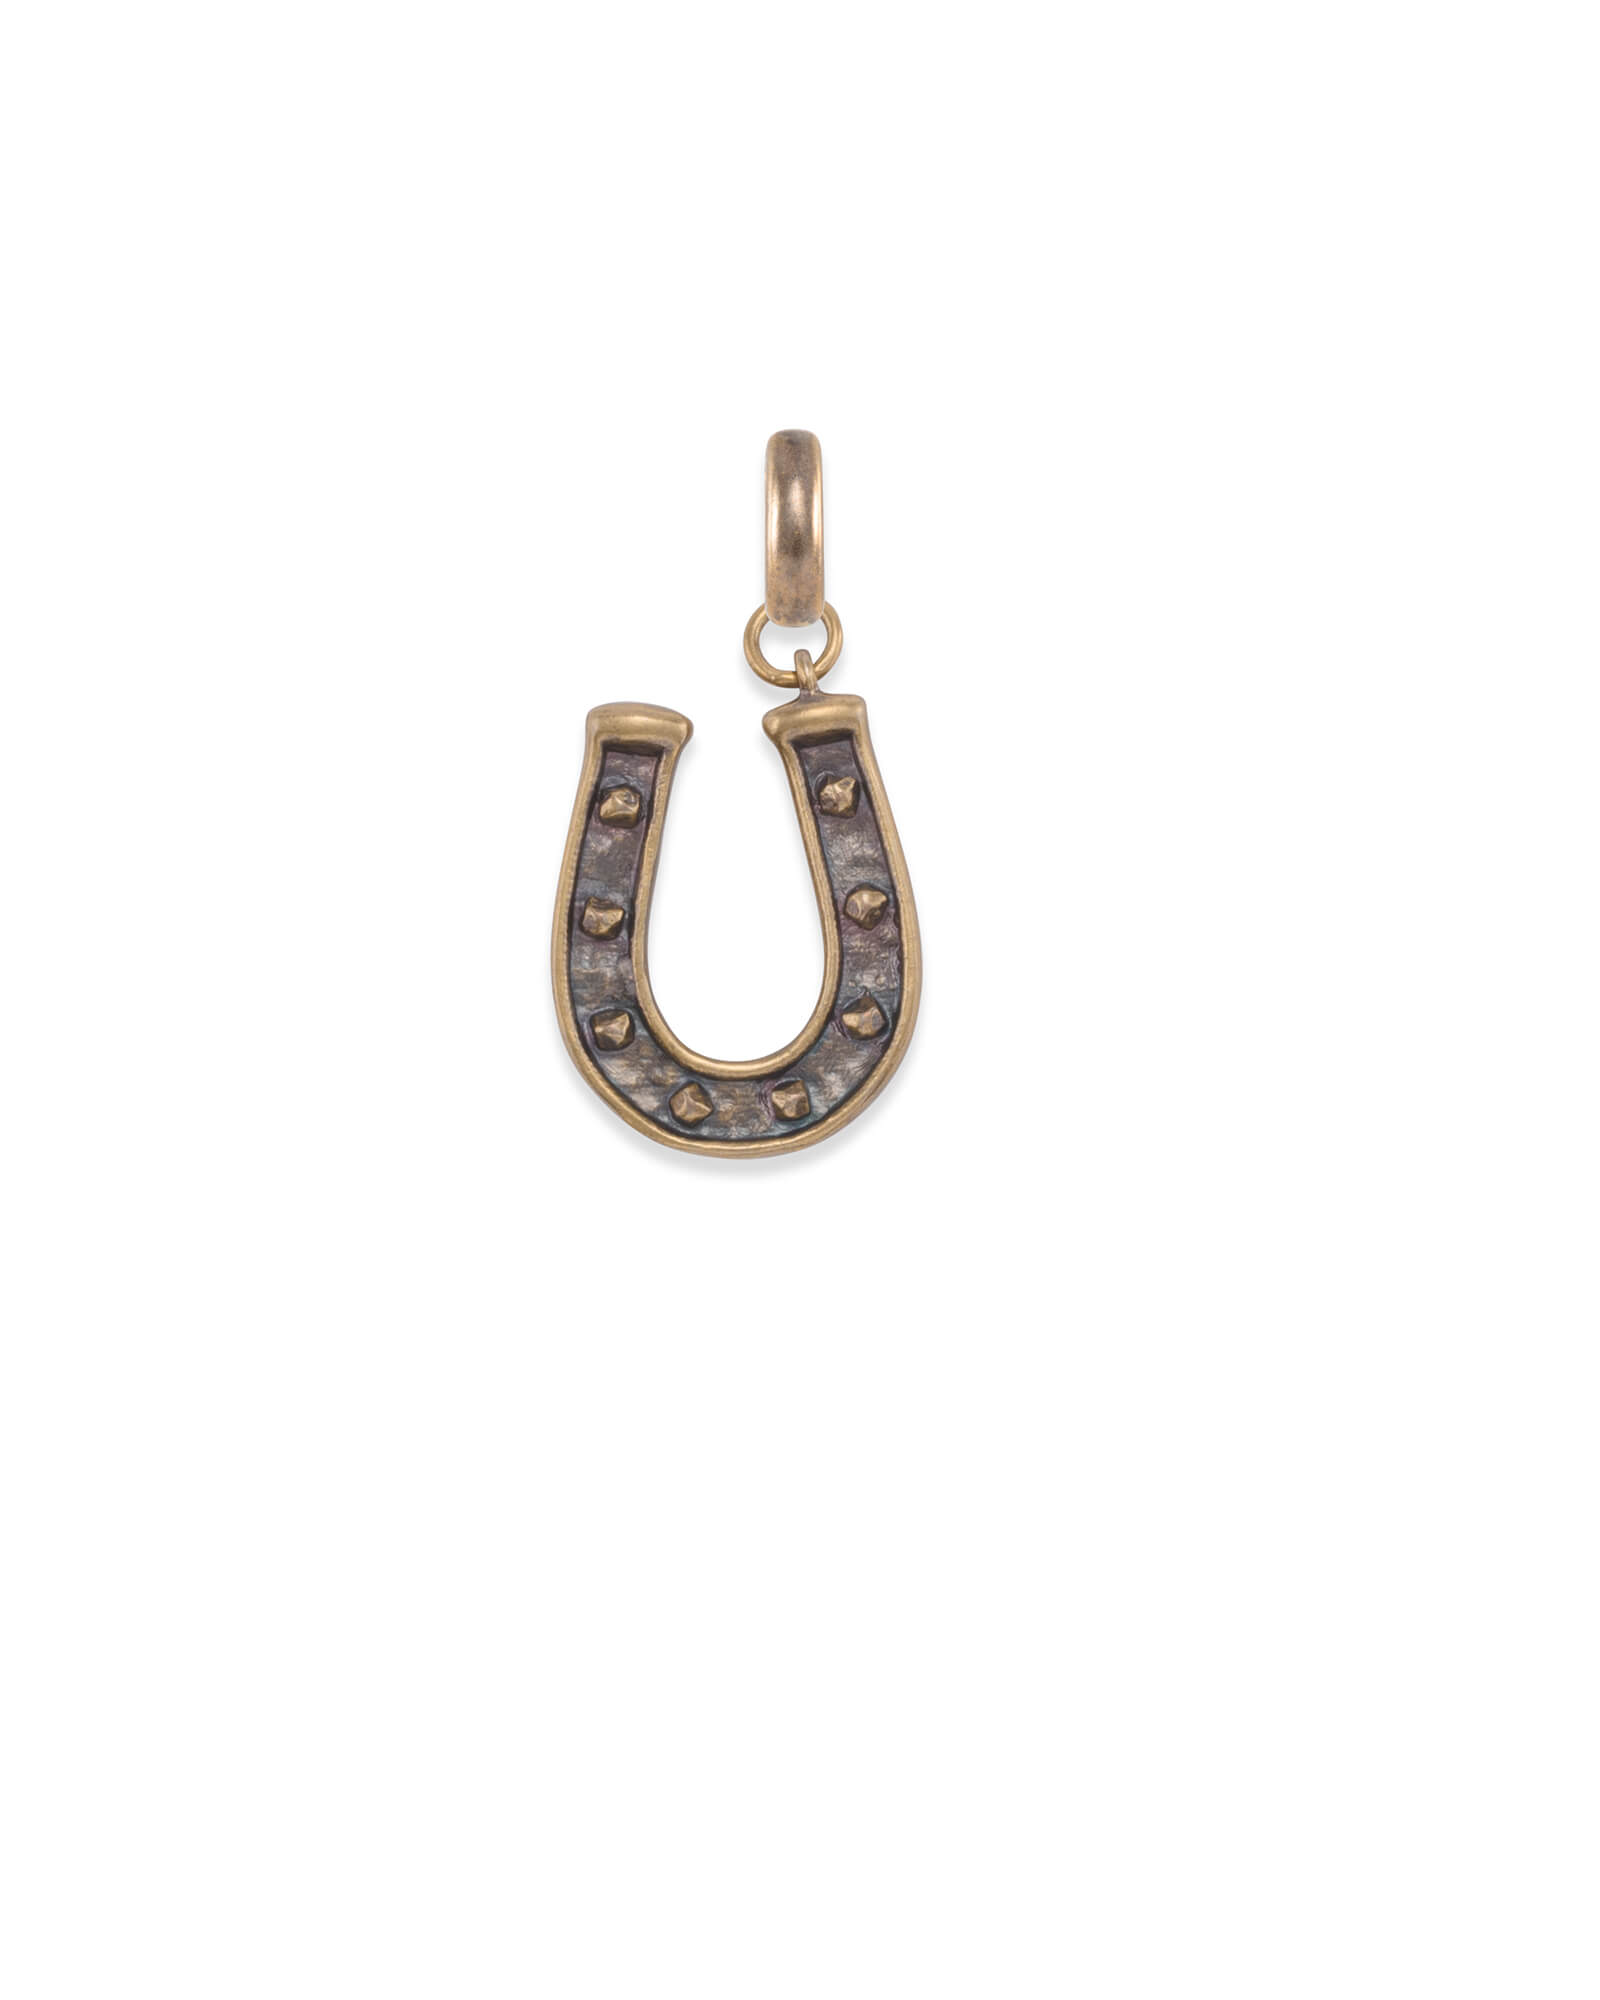 Horseshoe Charm in Vintage Gold